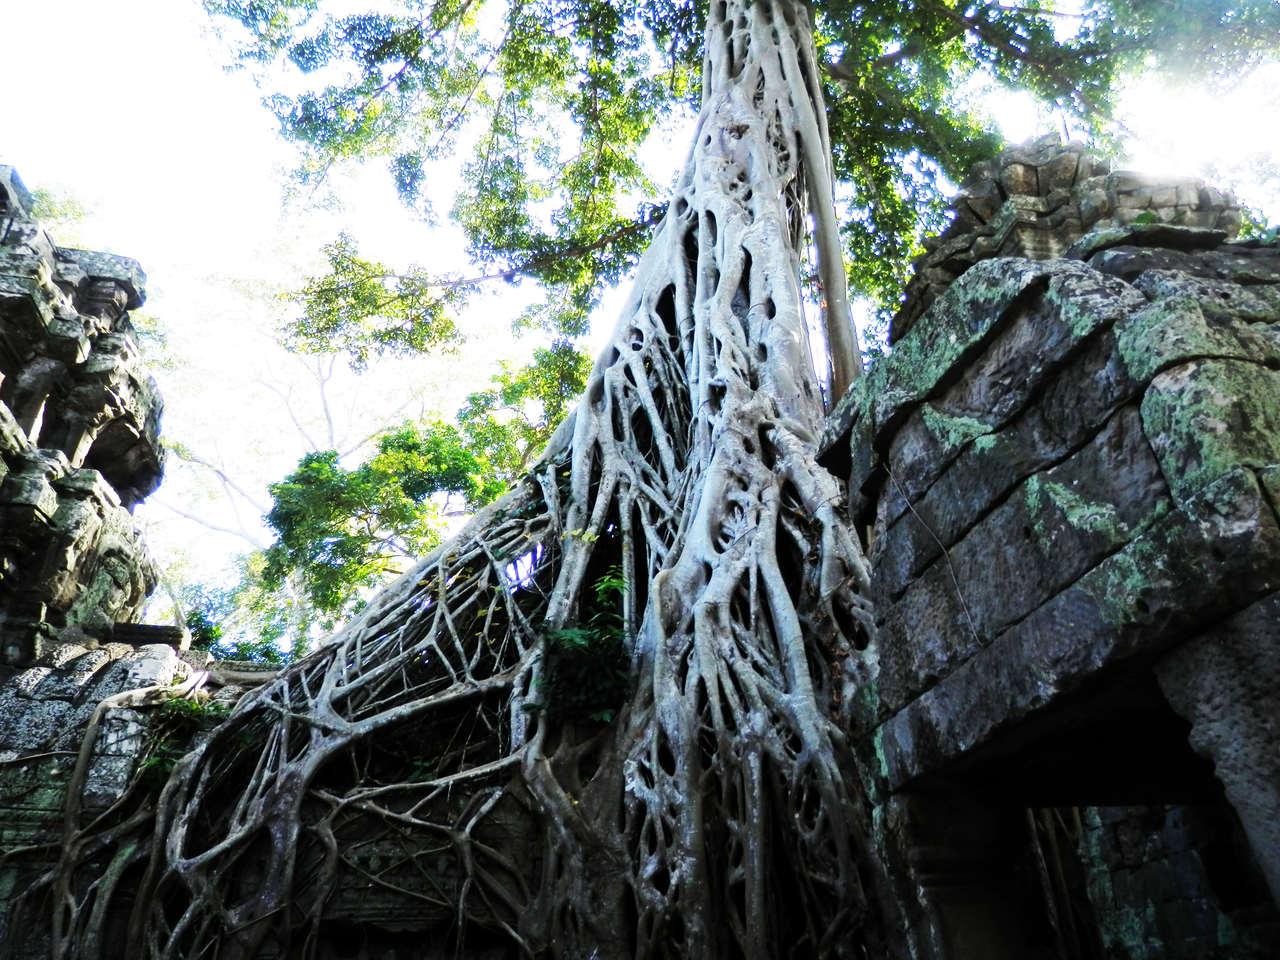 taprohm5_Easy-Resize.com